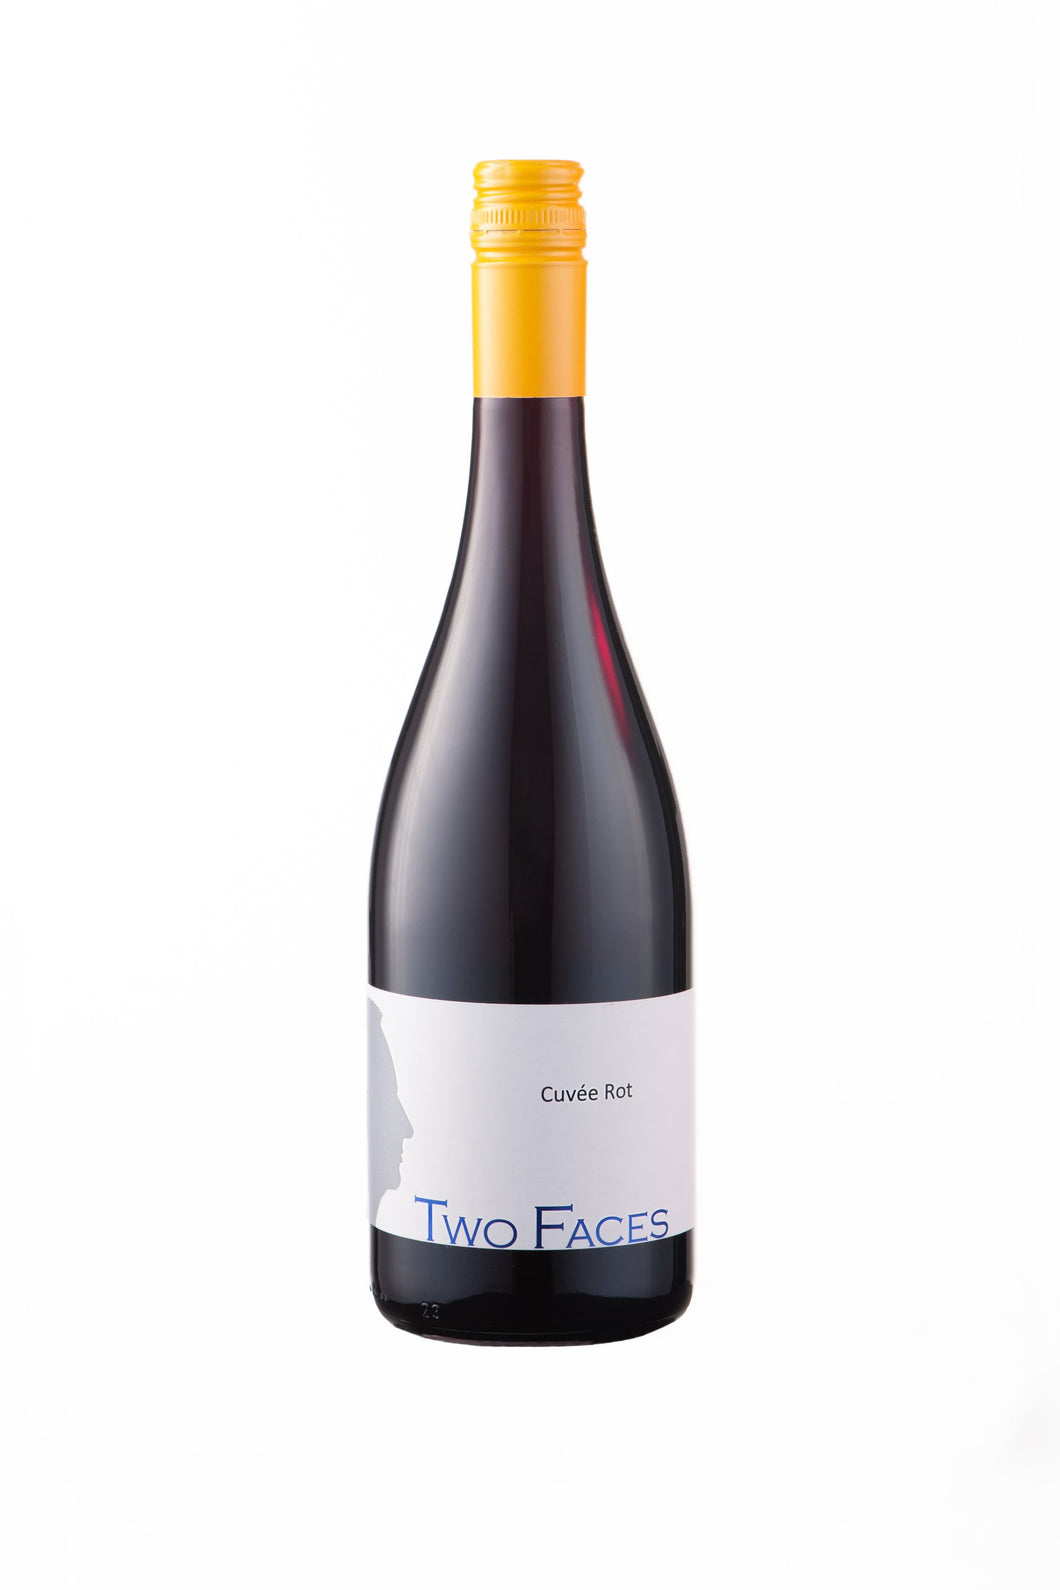 2Faces Cuvee Rot 0,75l